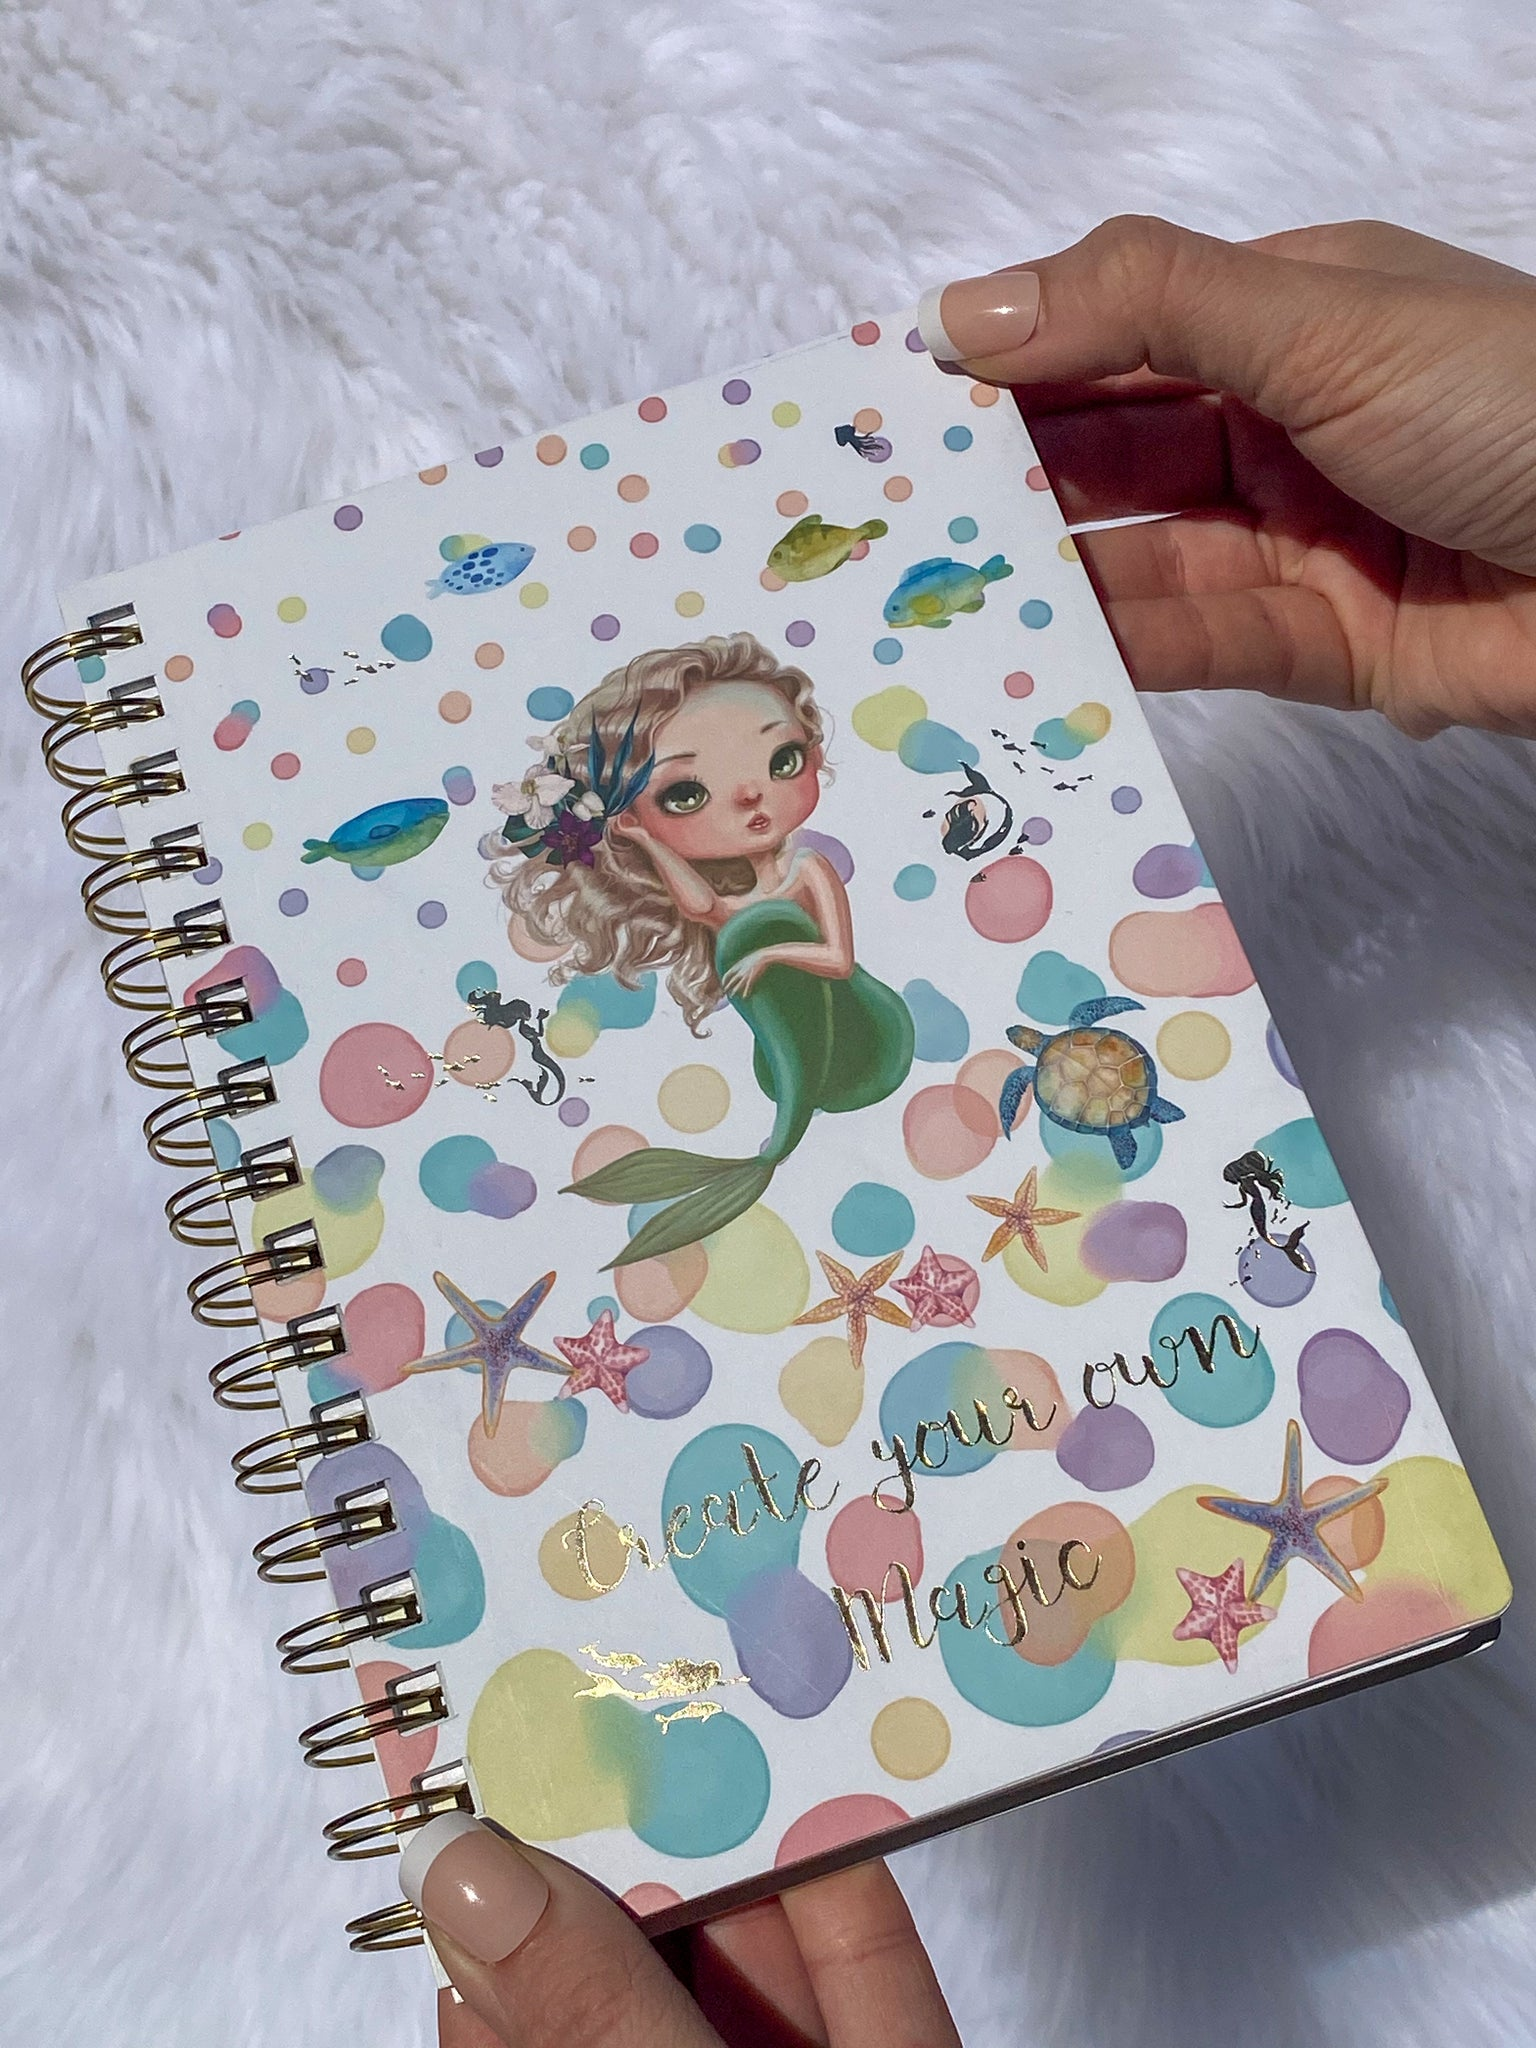 Create your own Magic Notebook